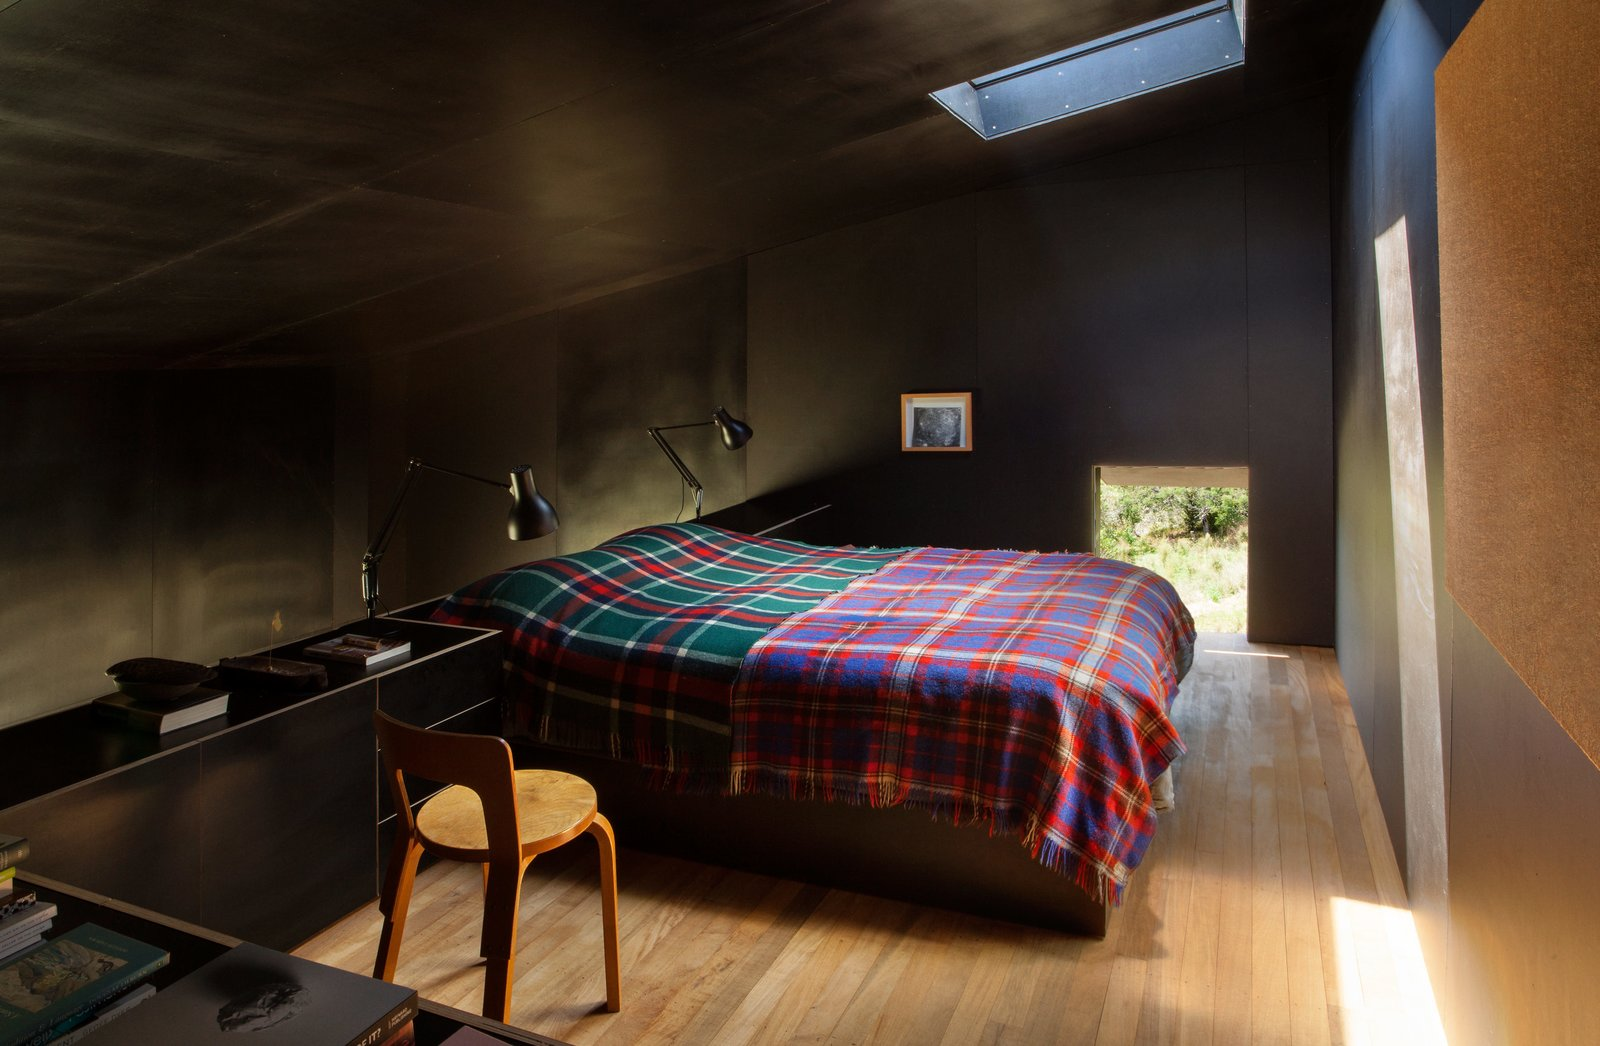 """Bedroom, Bed, Chair, Lamps, and Night Stands The formply used to line the black interior creates a """"small, inky bubble of space,"""" Cheshire says. """"It's incredibly calm and quiet as a consequence."""" His firm designed the built-in bed and cabinetry. The two Type 75 lamps are by Kenneth Grange for Anglepoise, and the Chair 65 is by Alvar Aalto.  Photo 5 of 7 in Two Tiny Cabins Chose Simplicity Over Size"""